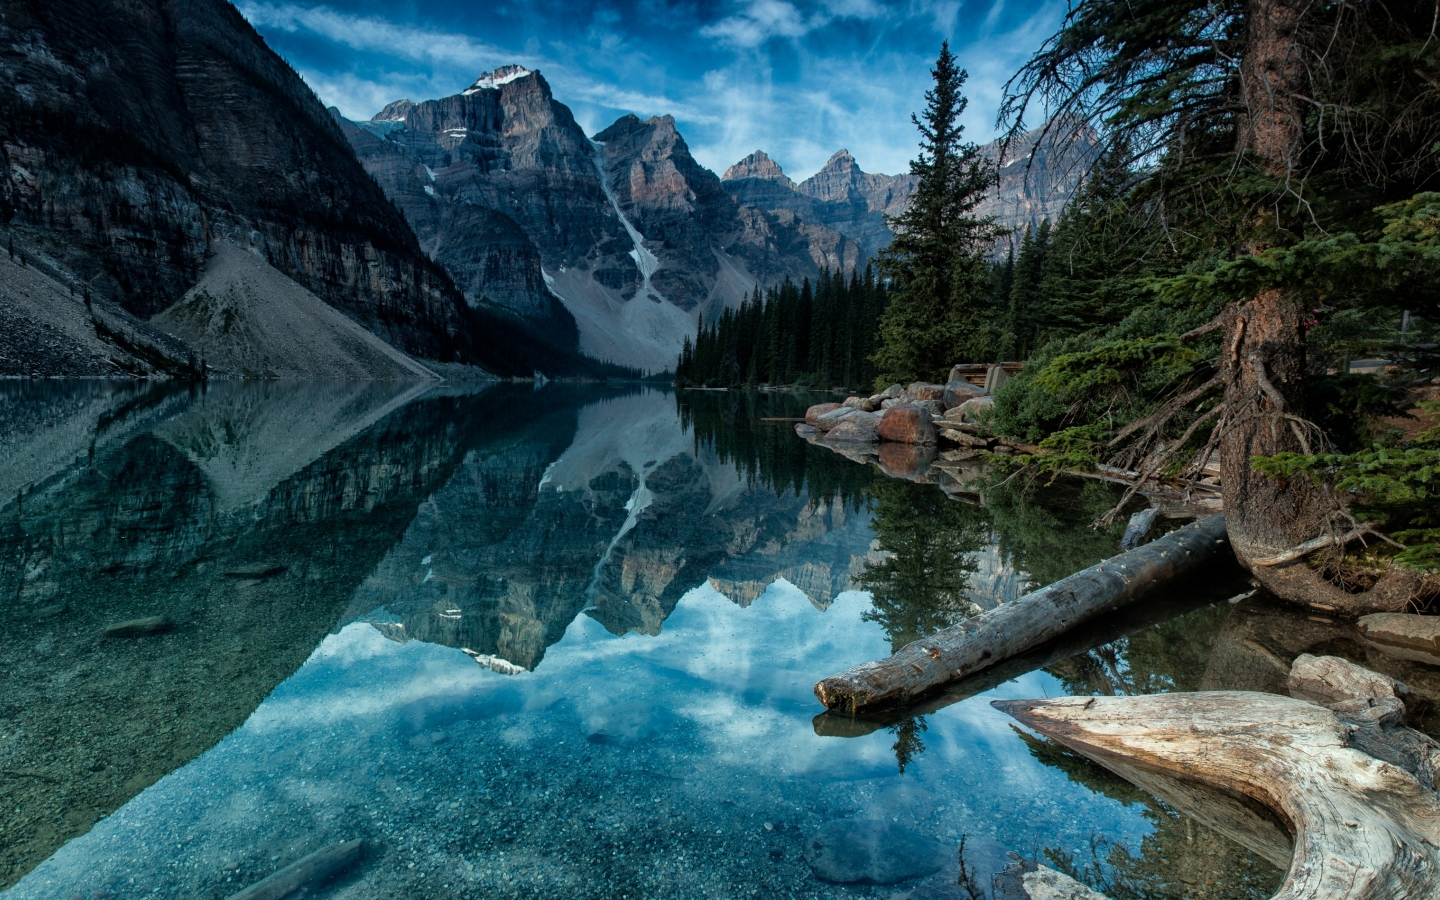 Moraine Lake Alberta Canada for 1440 x 900 widescreen resolution